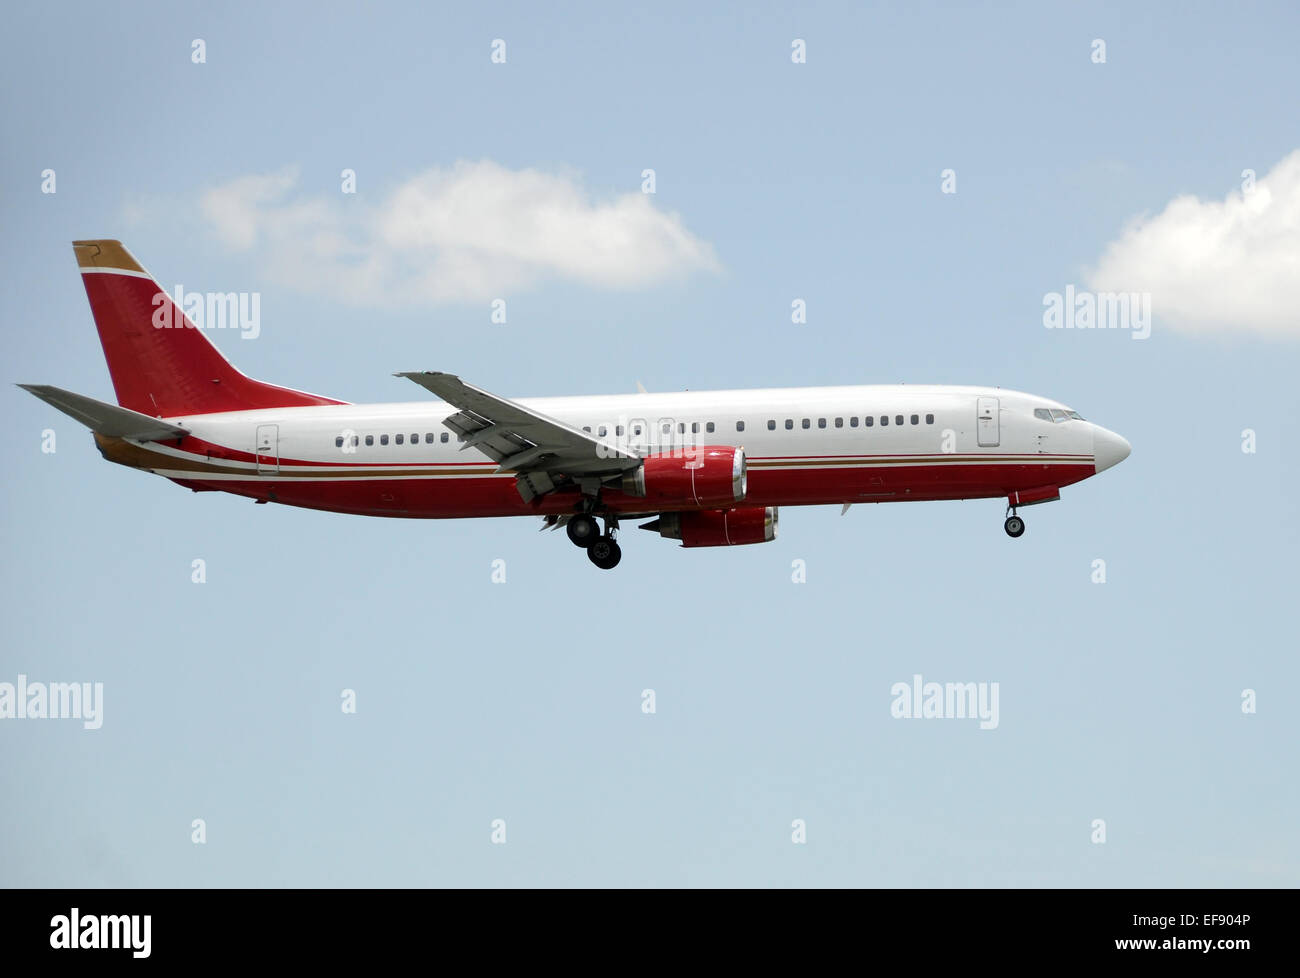 Side view of jet airplane landing Boeing 737 - Stock Image